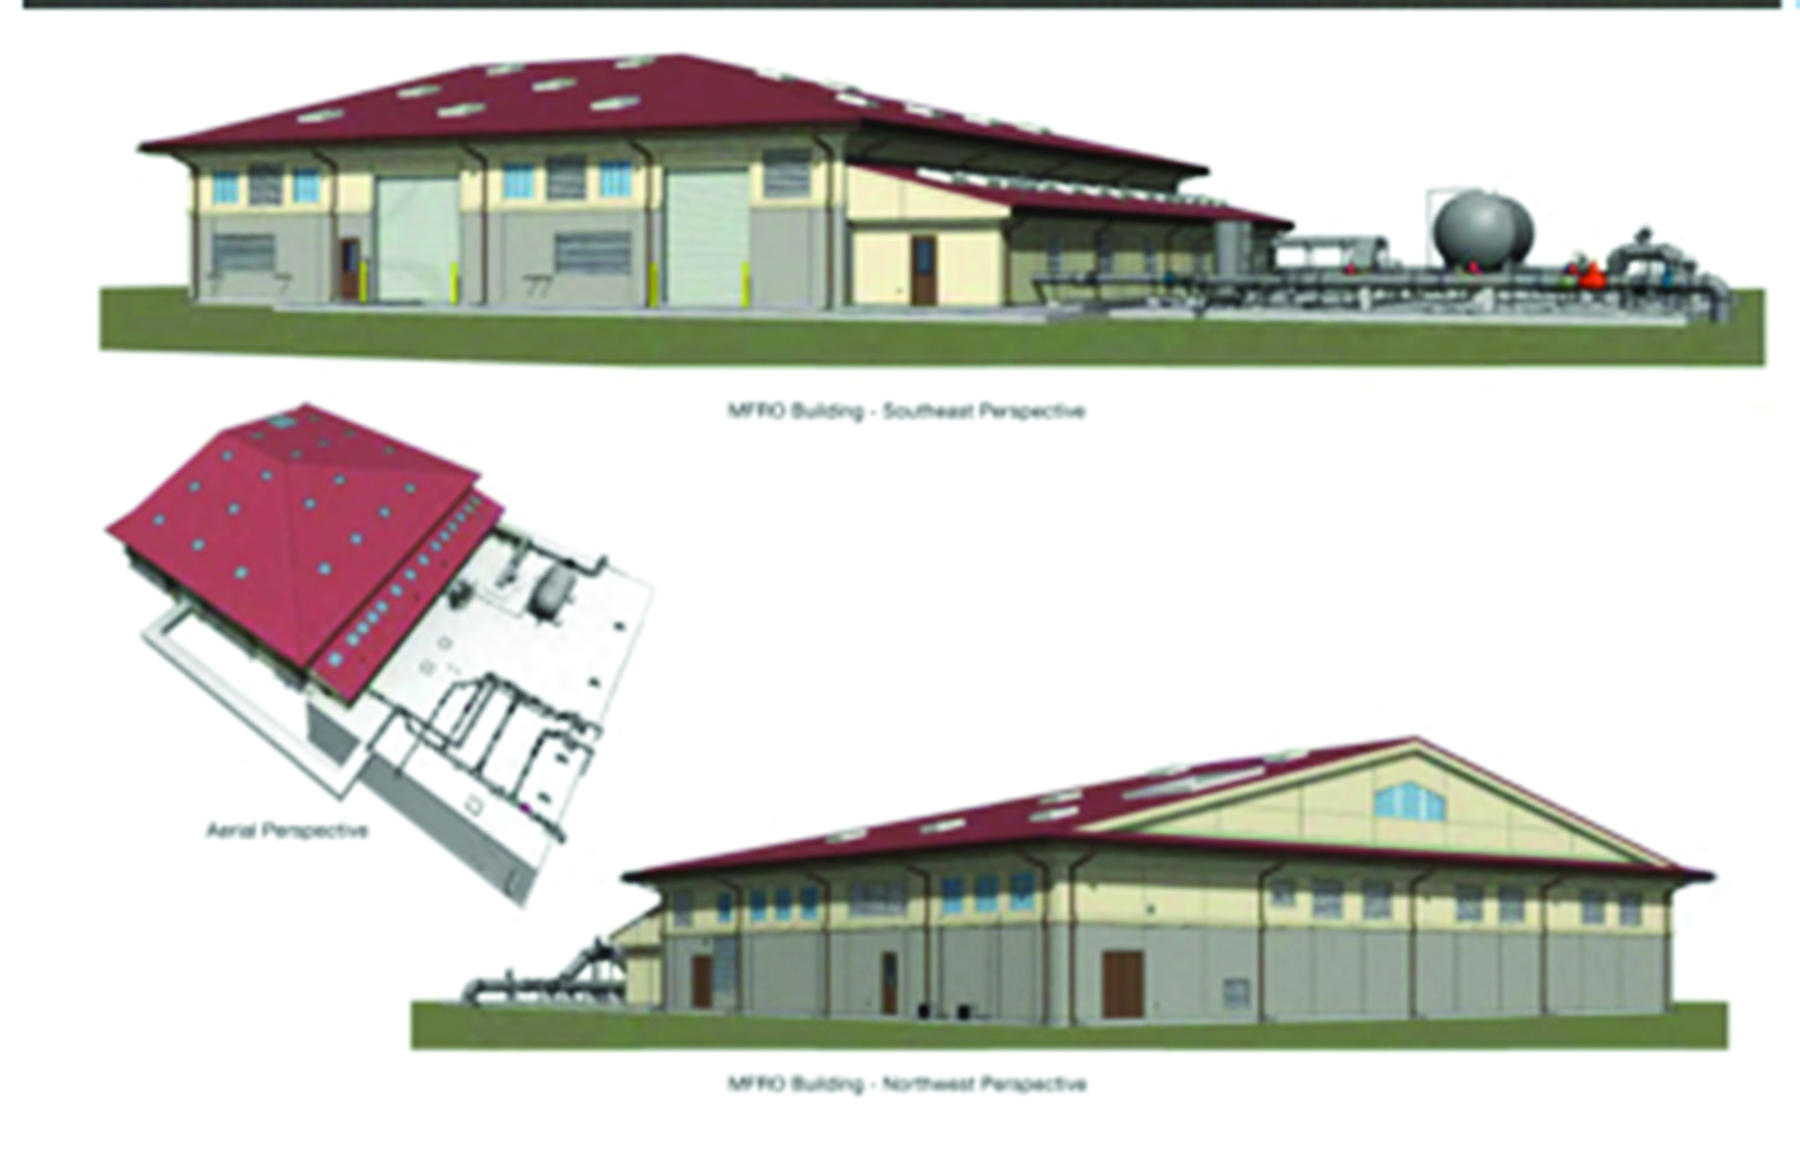 Proposed appearance of the water plant that is aesthetically designed to attempt to match the appearance of the housing area surrounding the facility.